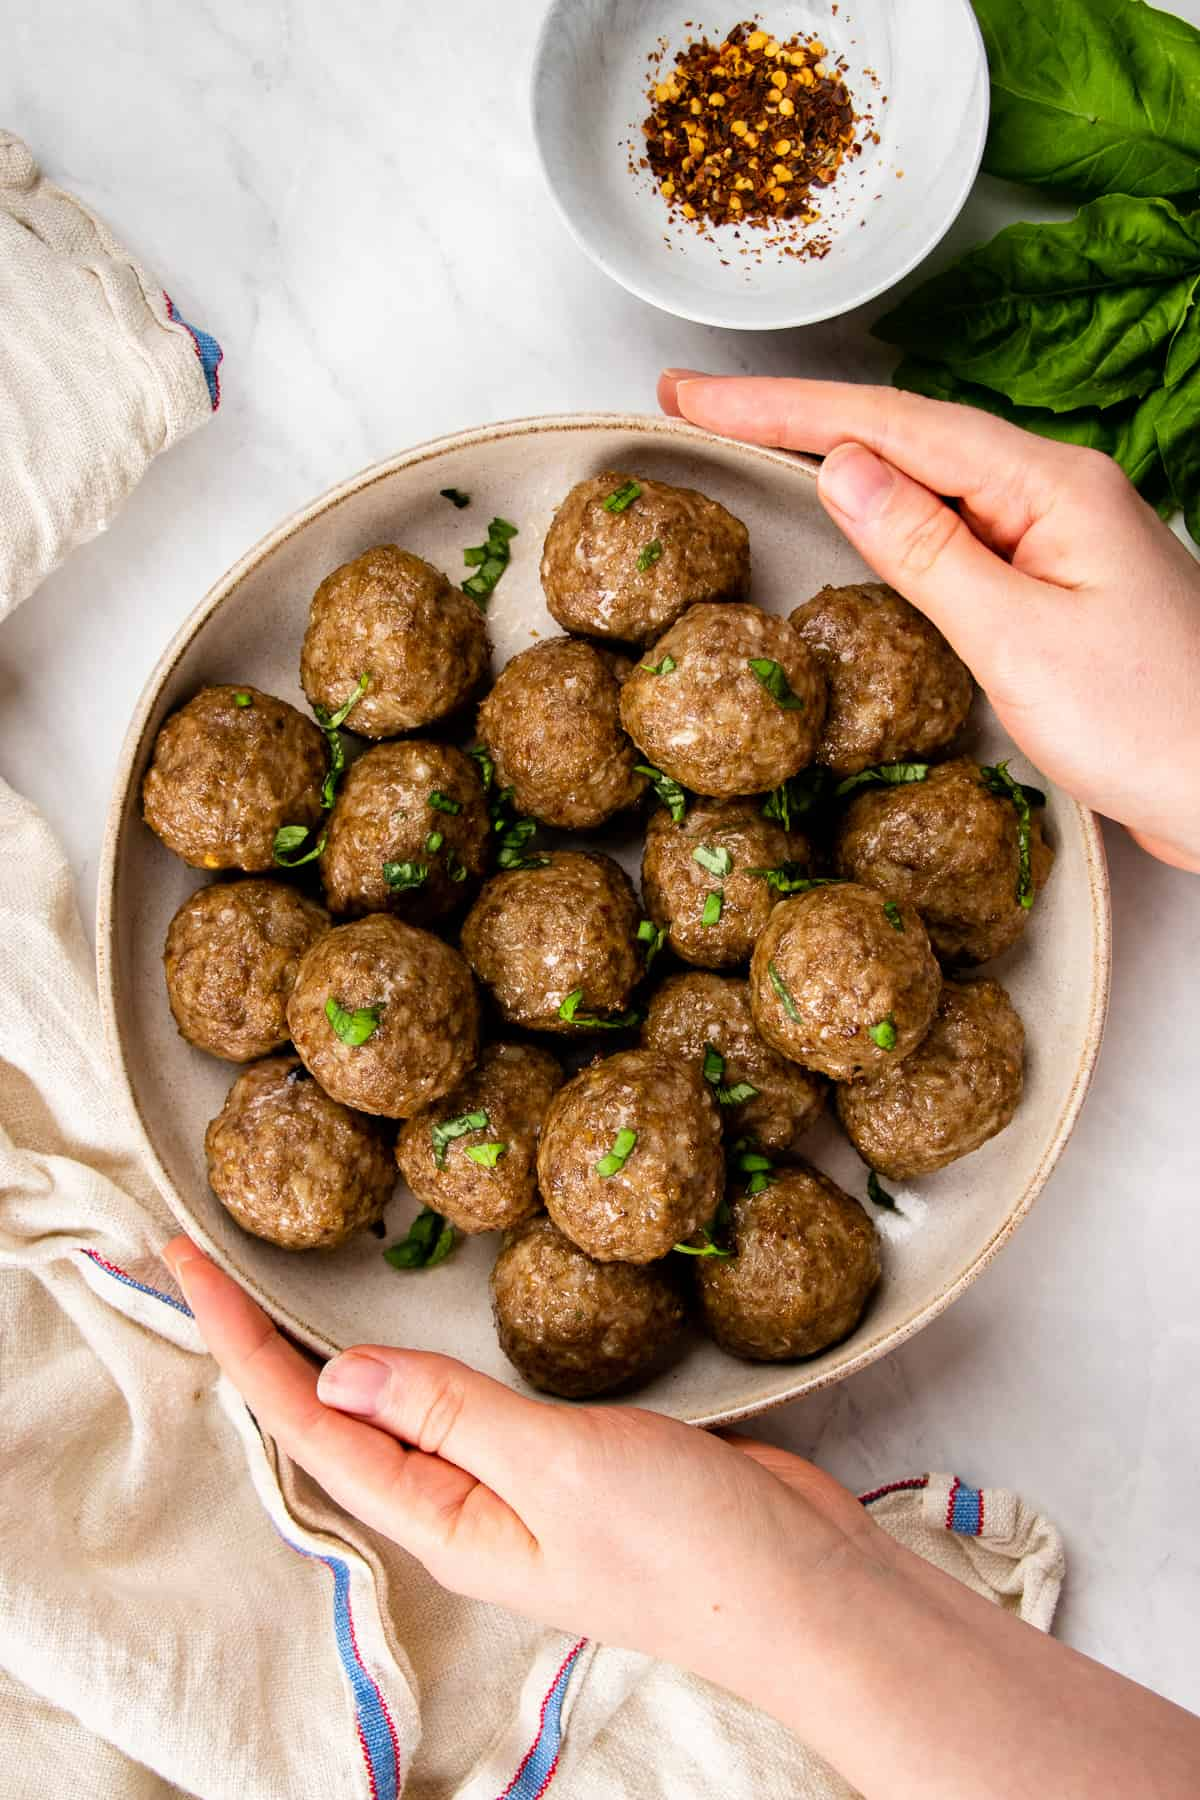 Cooked meatballs served on a plate.